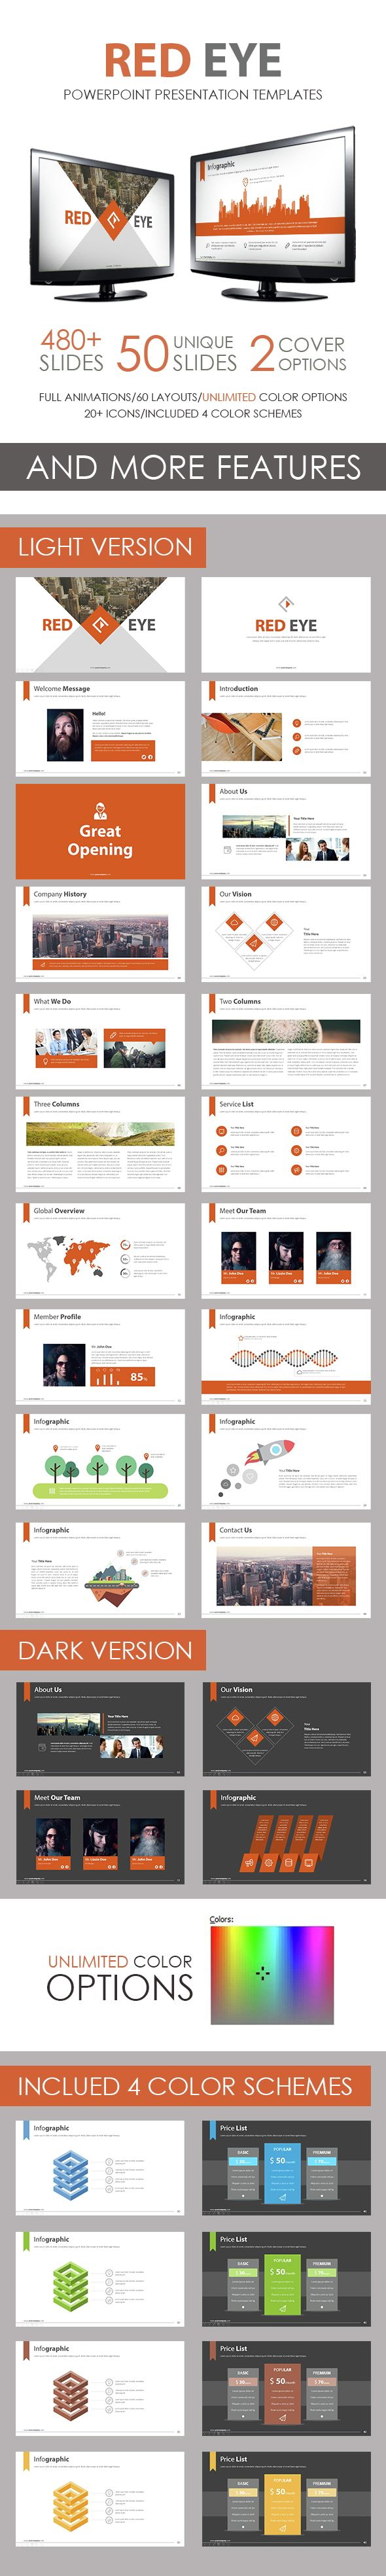 red eye powerpoint template | red eyes, eye and graphics, Presentation templates